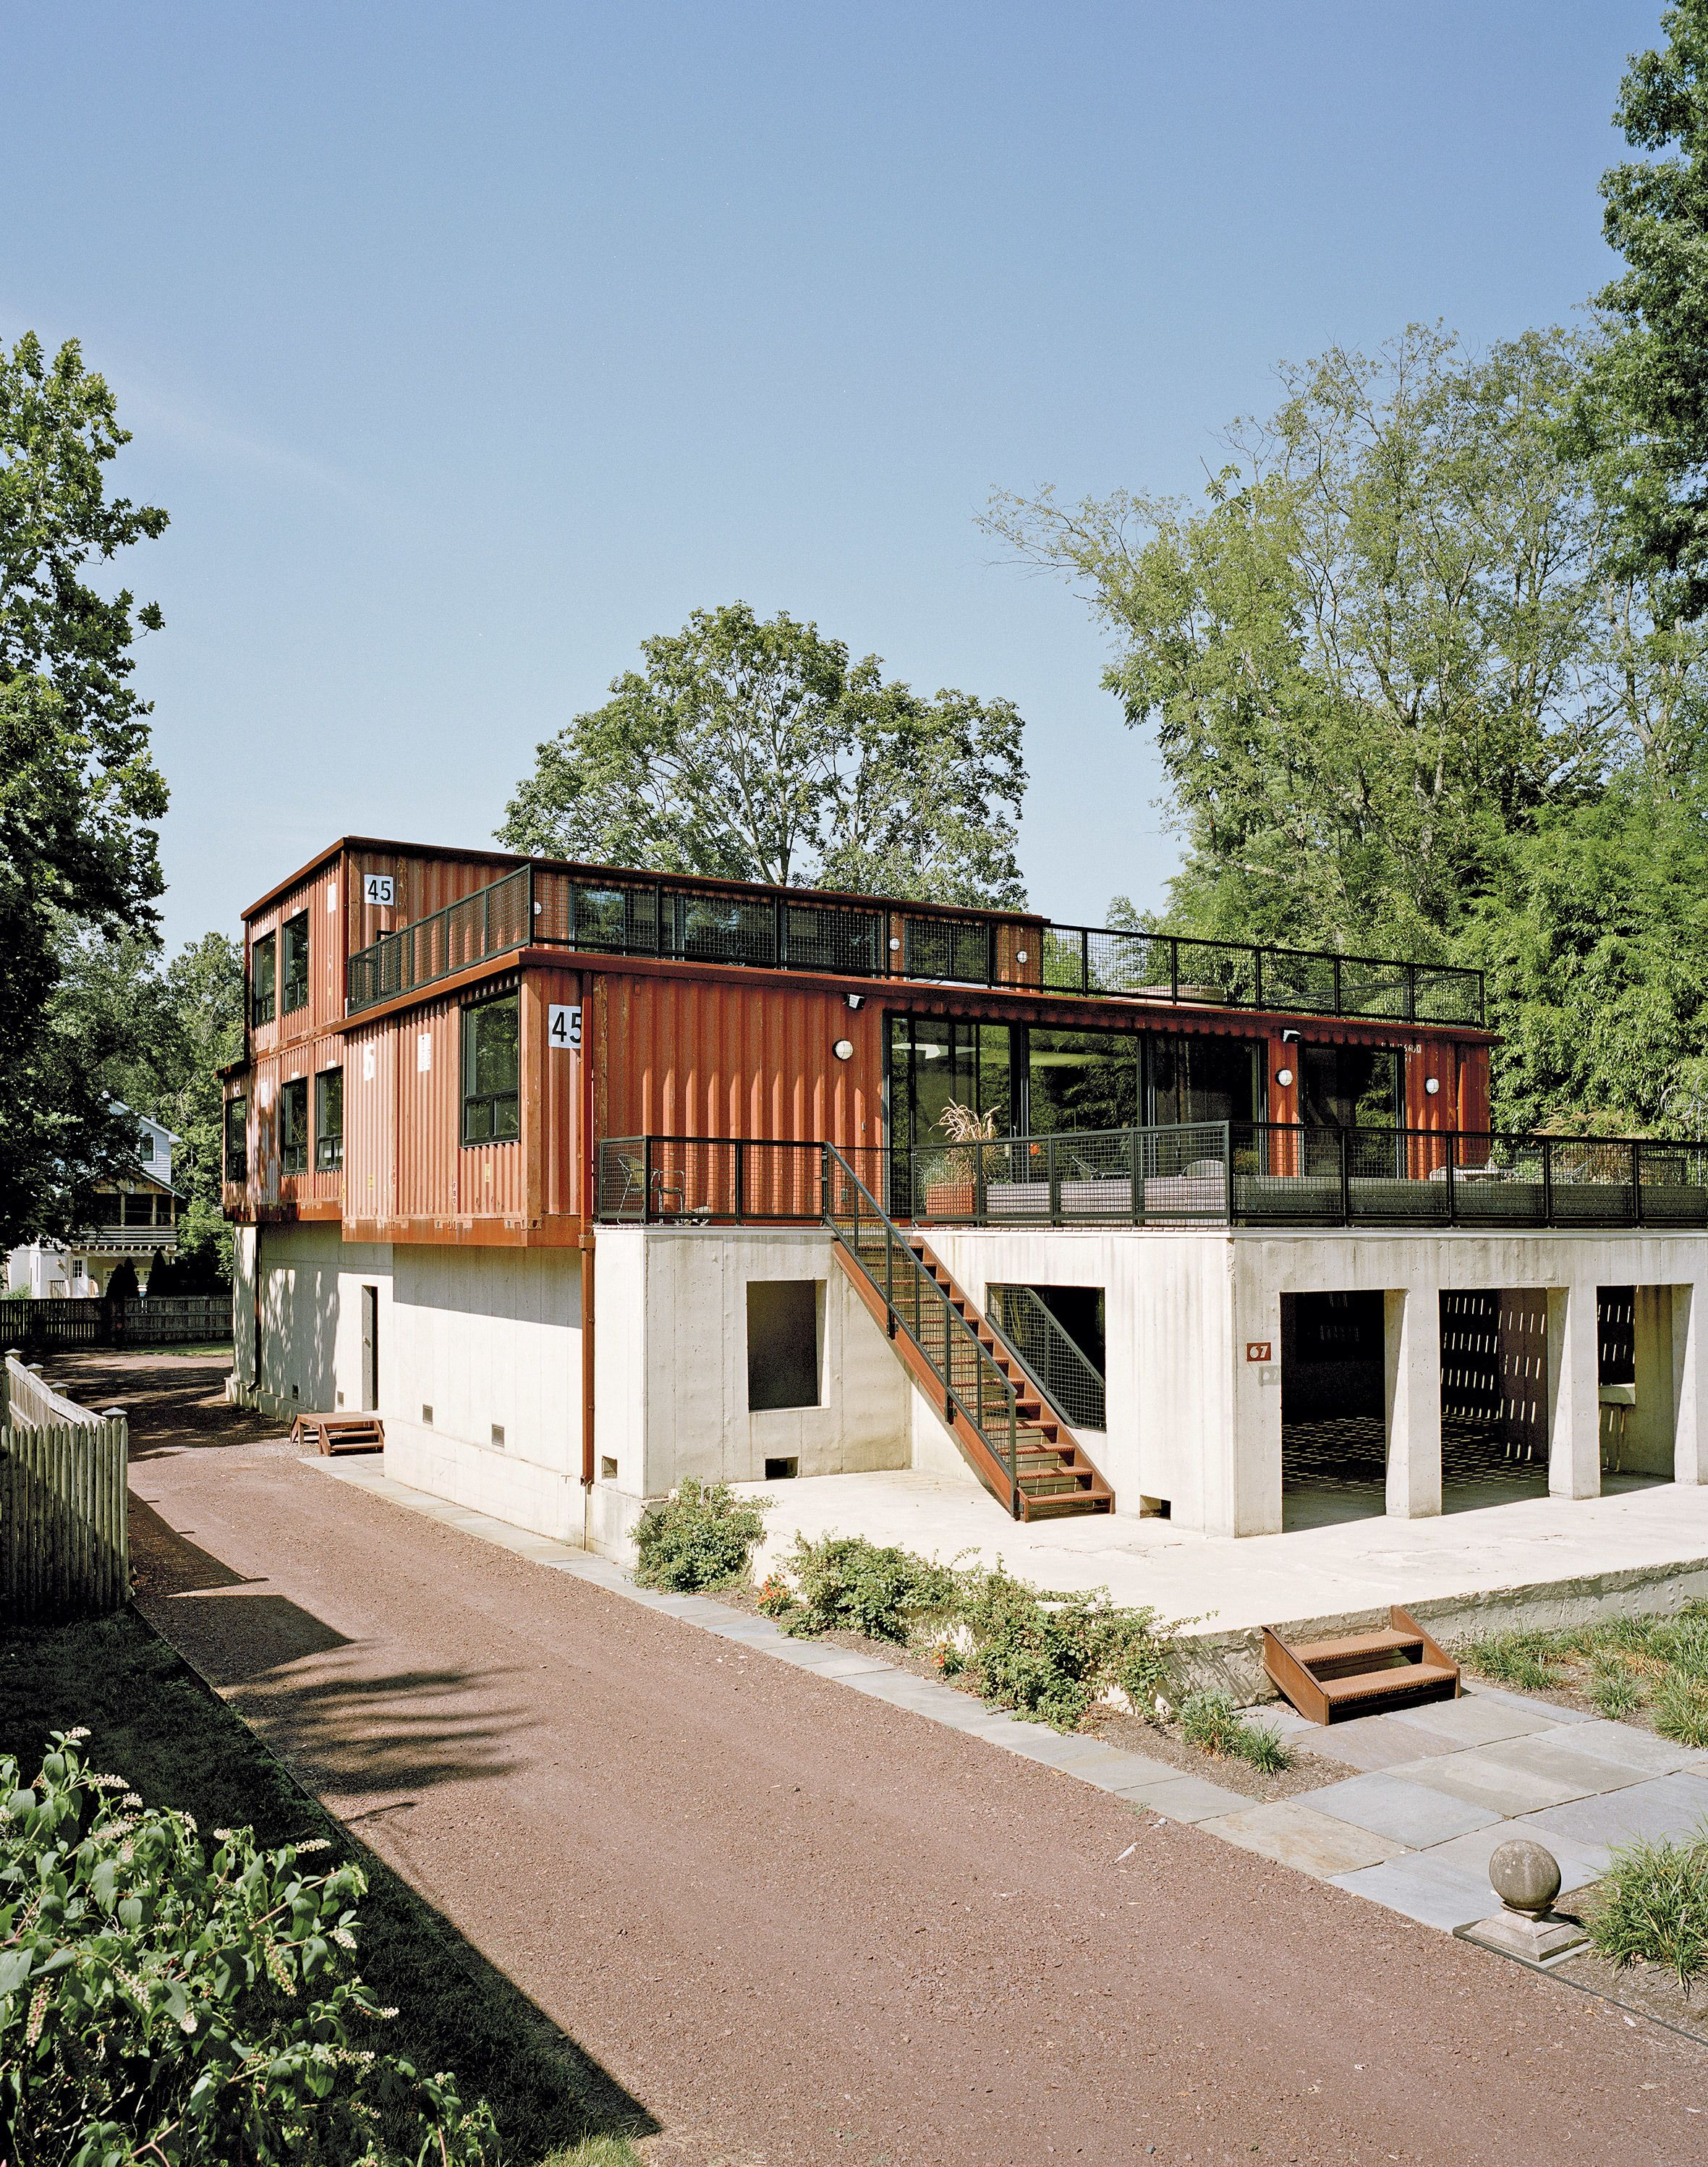 a shipping container home in pennsylvania embraces its rugged industrial origins photo 1 of 12 - Fertig Versand Container Huser Usa